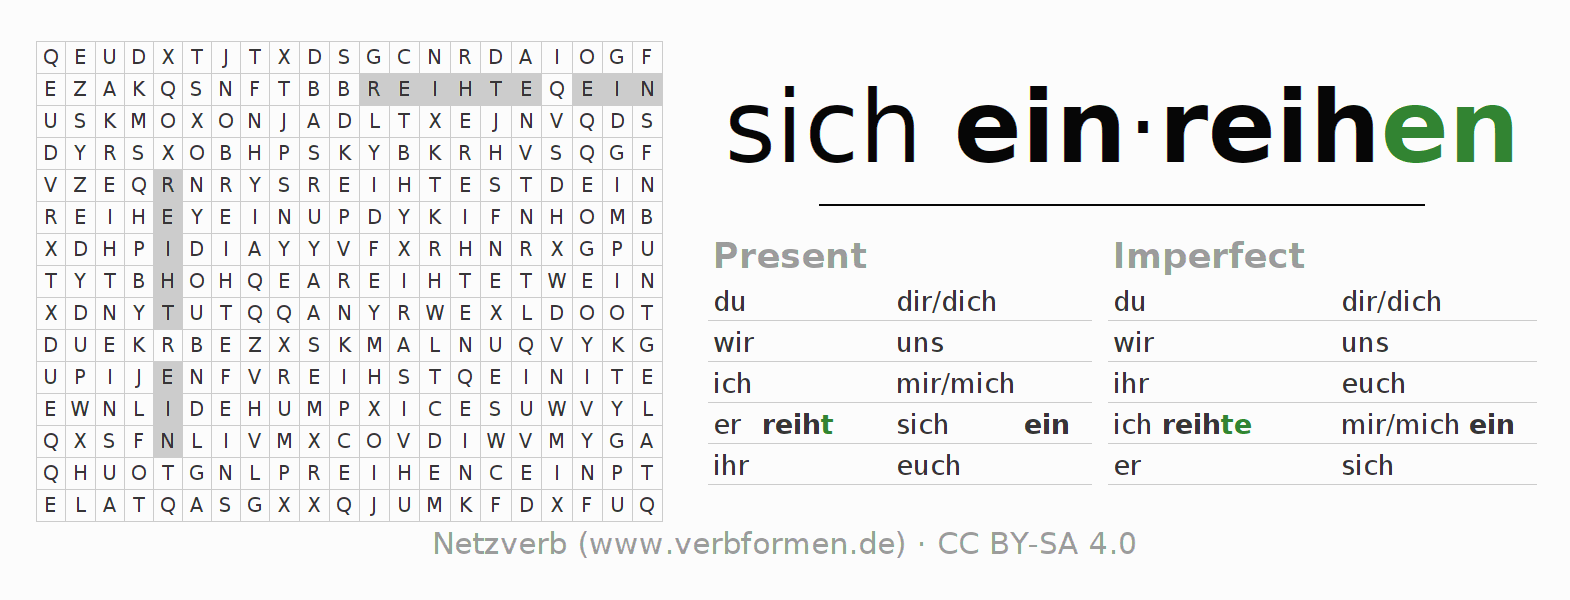 Word search puzzle for the conjugation of the verb sich einreihen